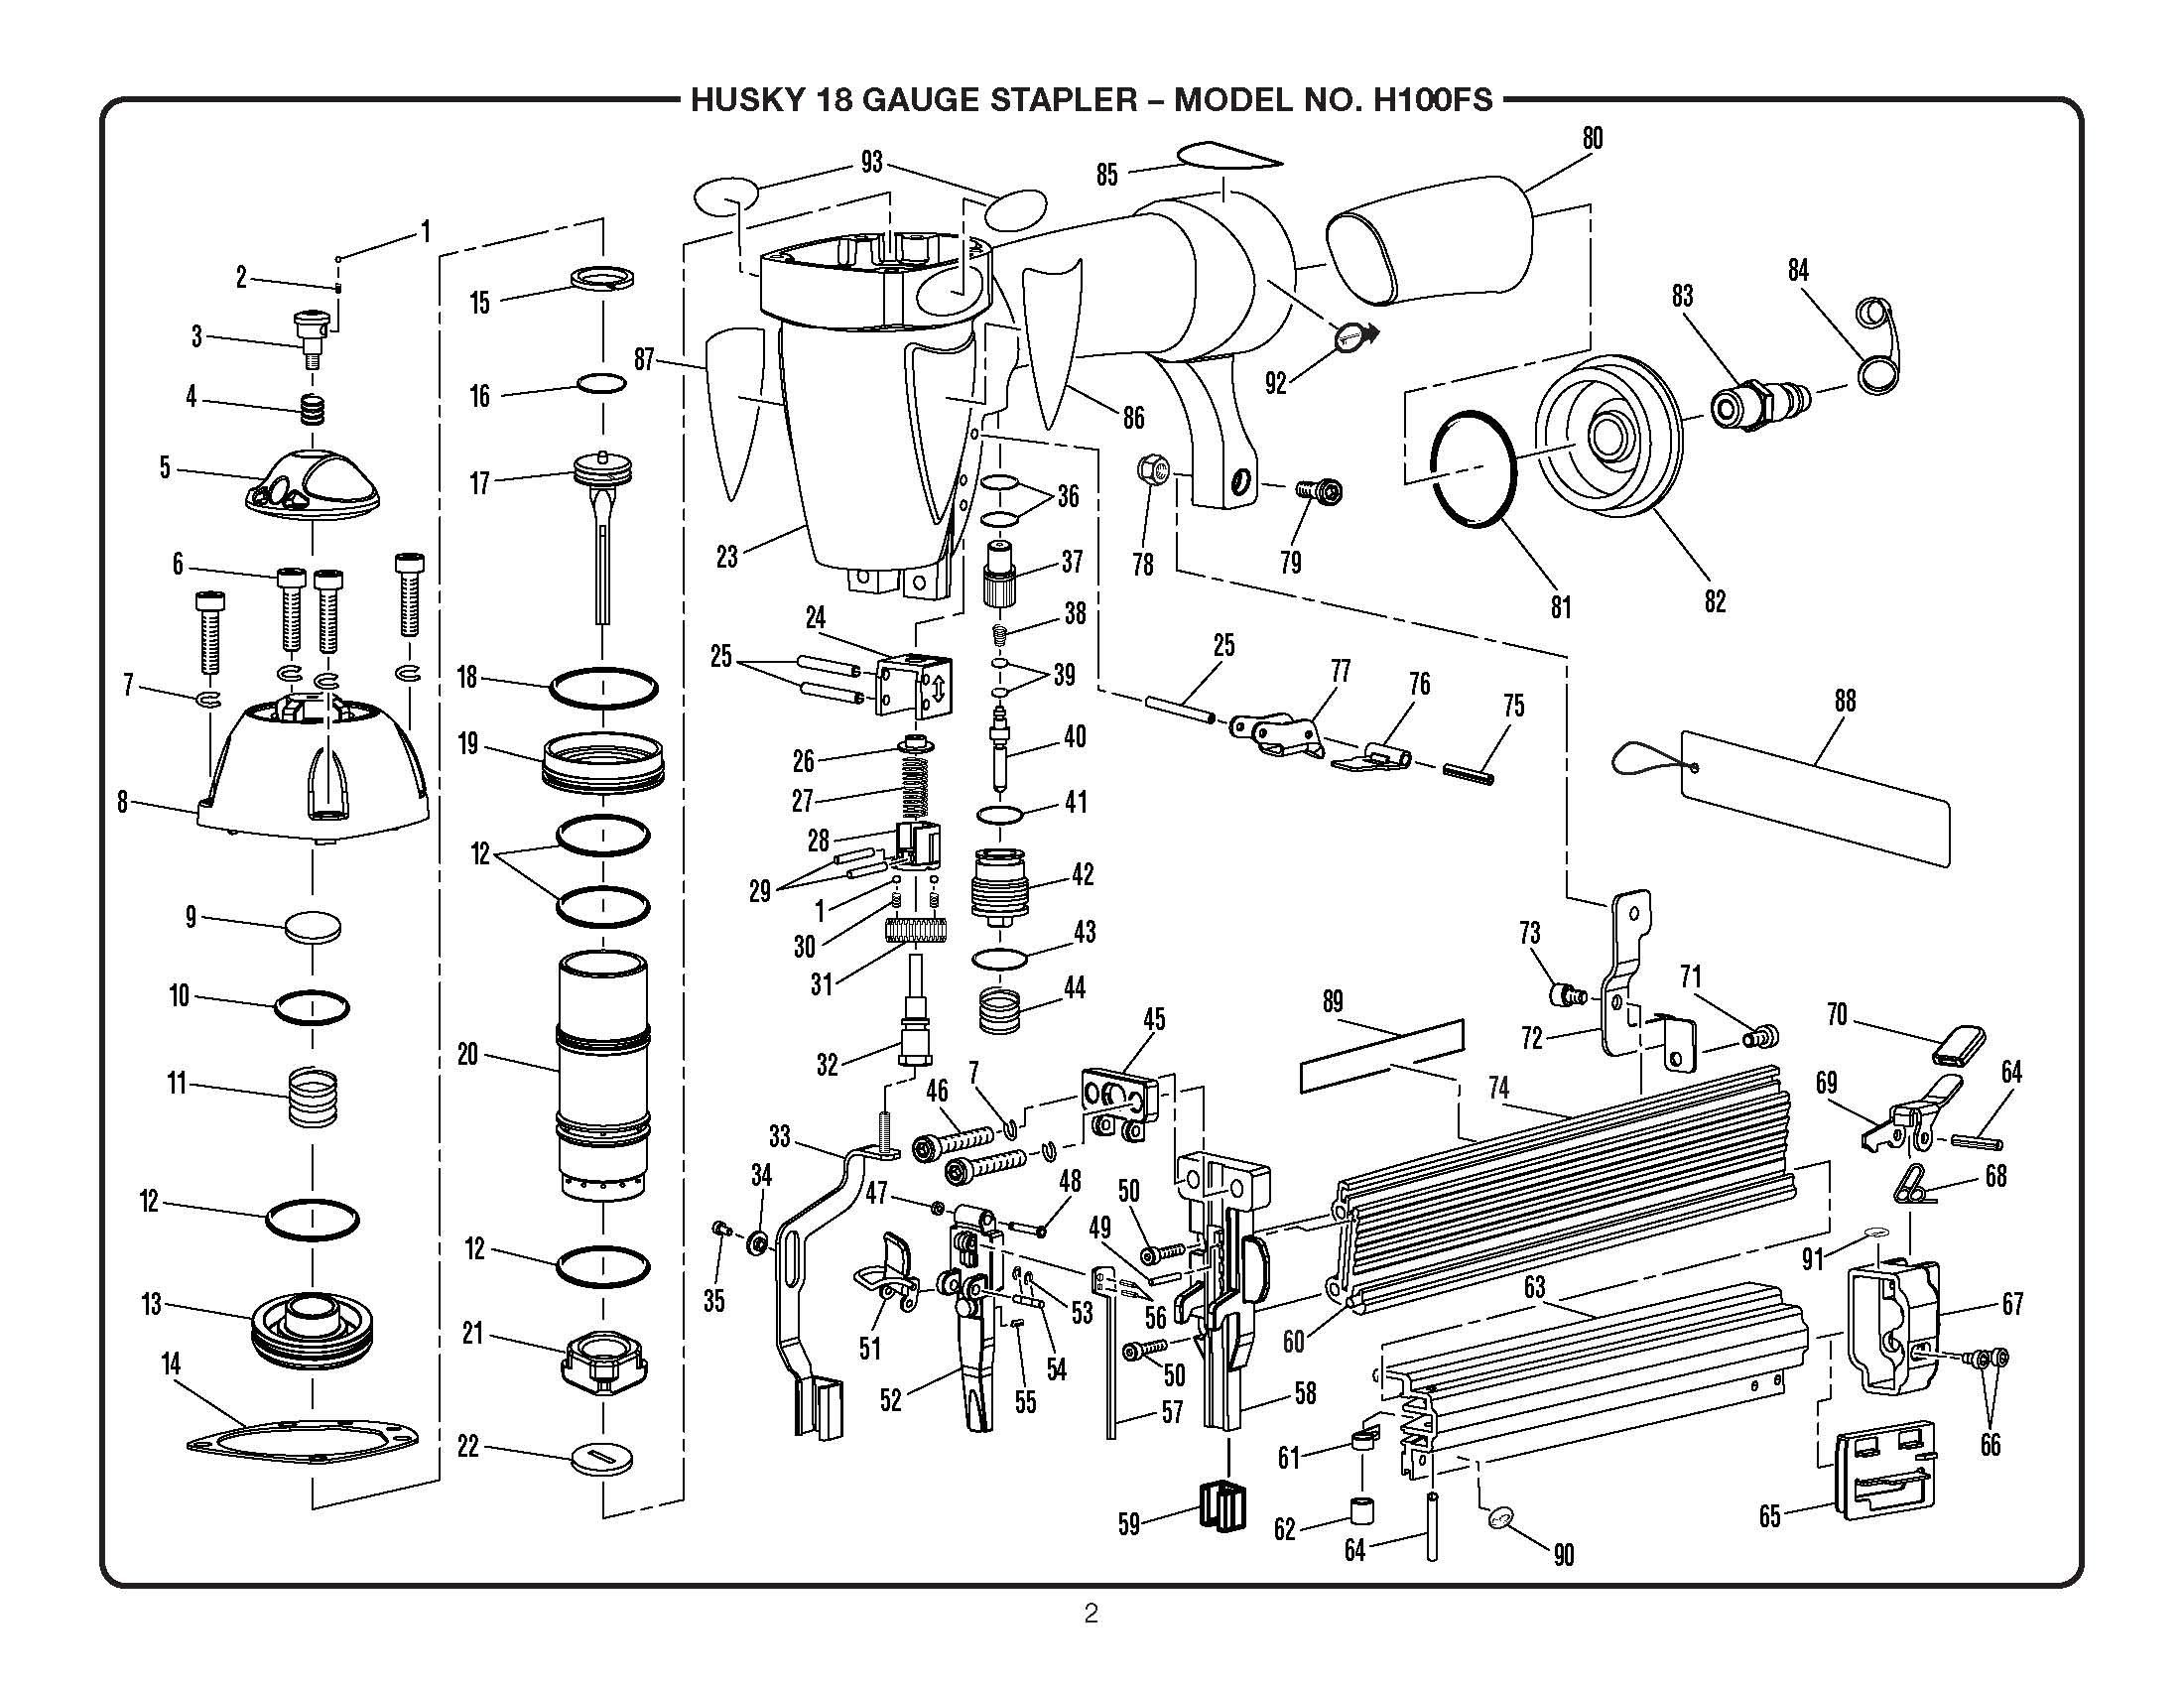 Staple Gun Parts Diagram Staple Gun Exploded View